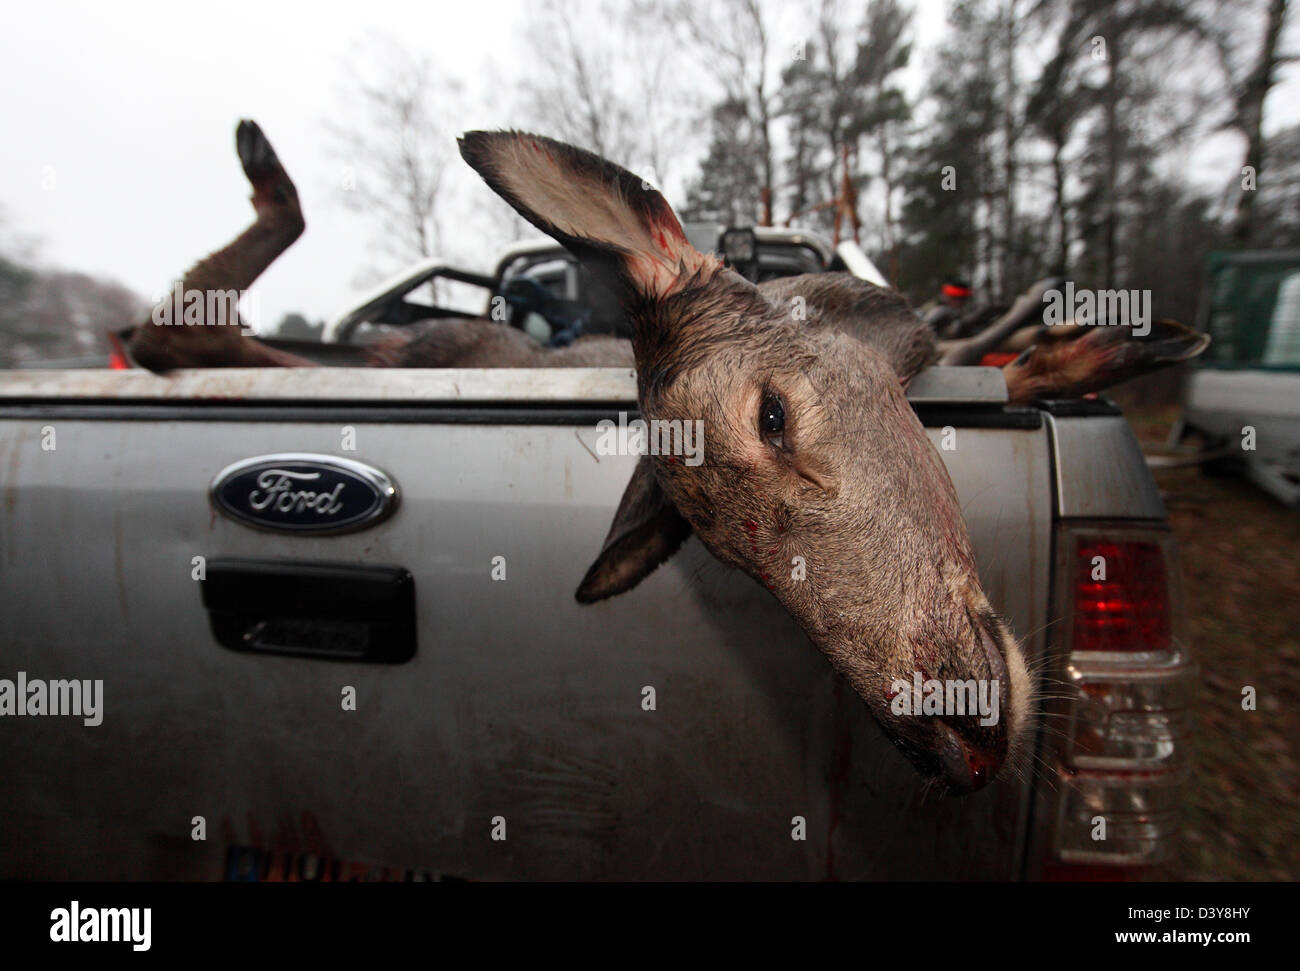 Lehnitz, Germany, place killed deer depends on the loading area of a car - Stock Image